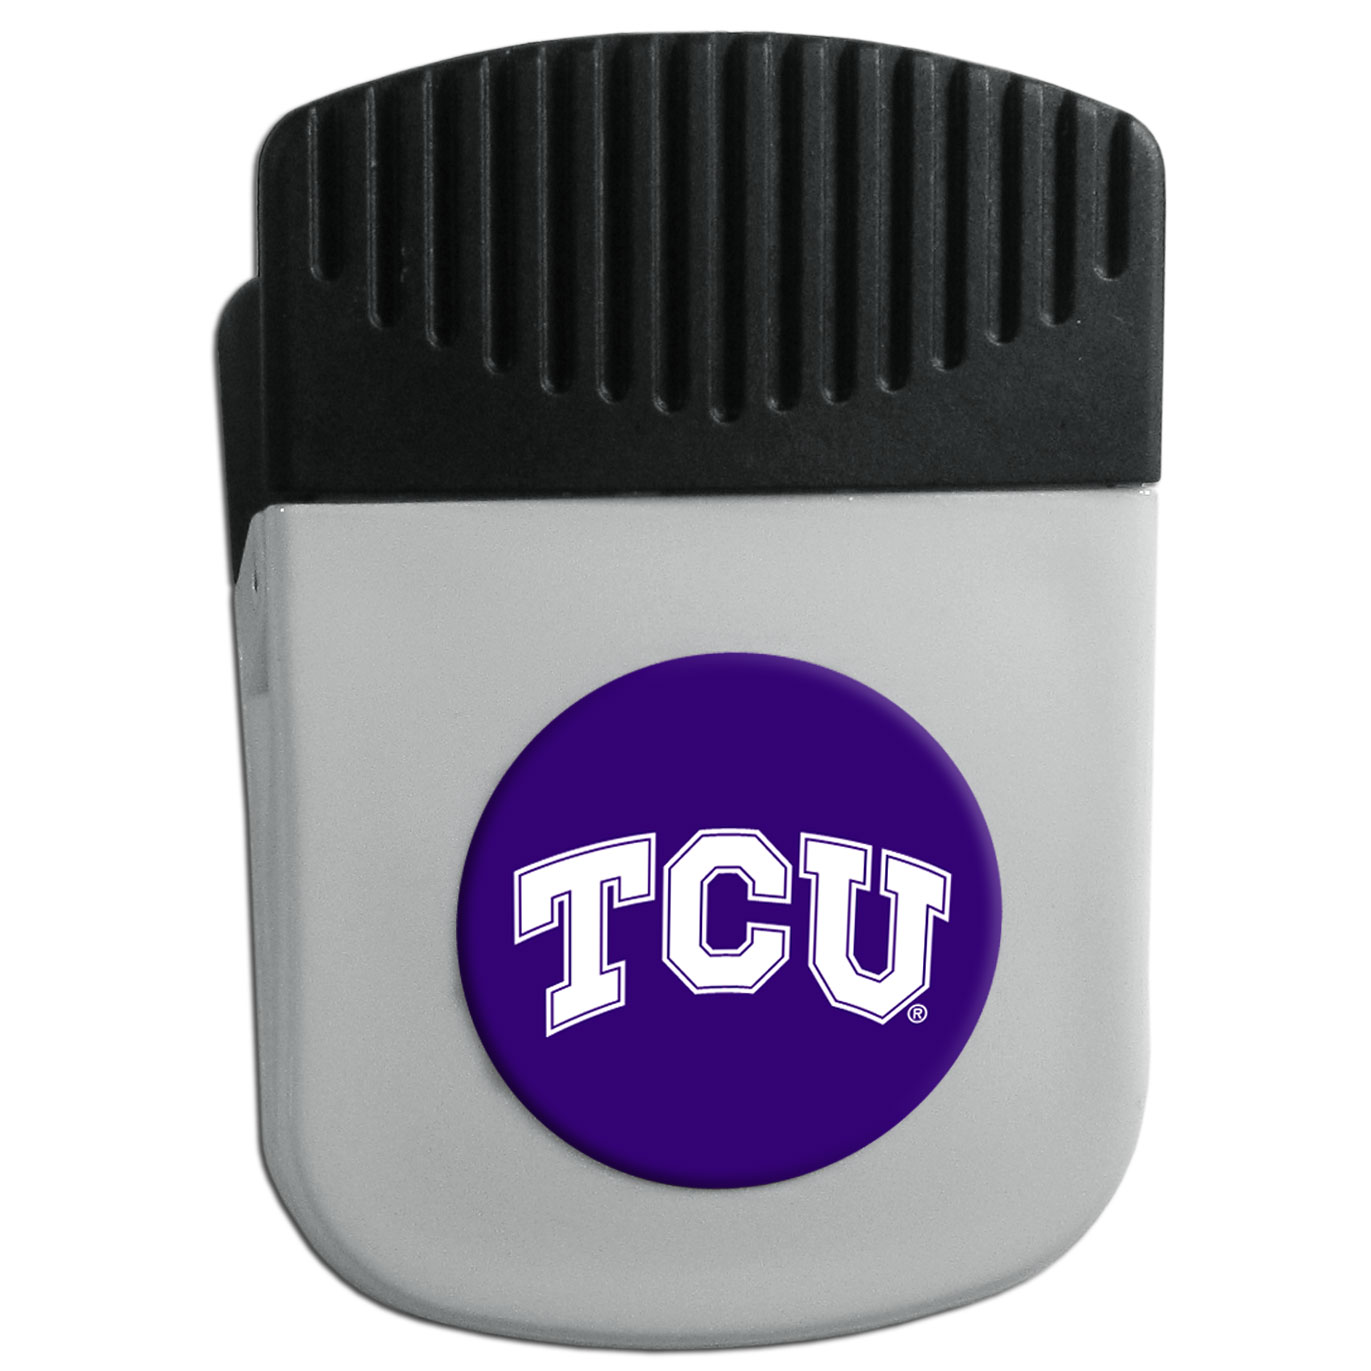 TCU Horned Frogs Chip Clip Magnet - Use this attractive clip magnet to hold memos, photos or appointment cards on the fridge or take it down keep use it to clip bags shut. The magnet features a domed TCU Horned Frogs logo.